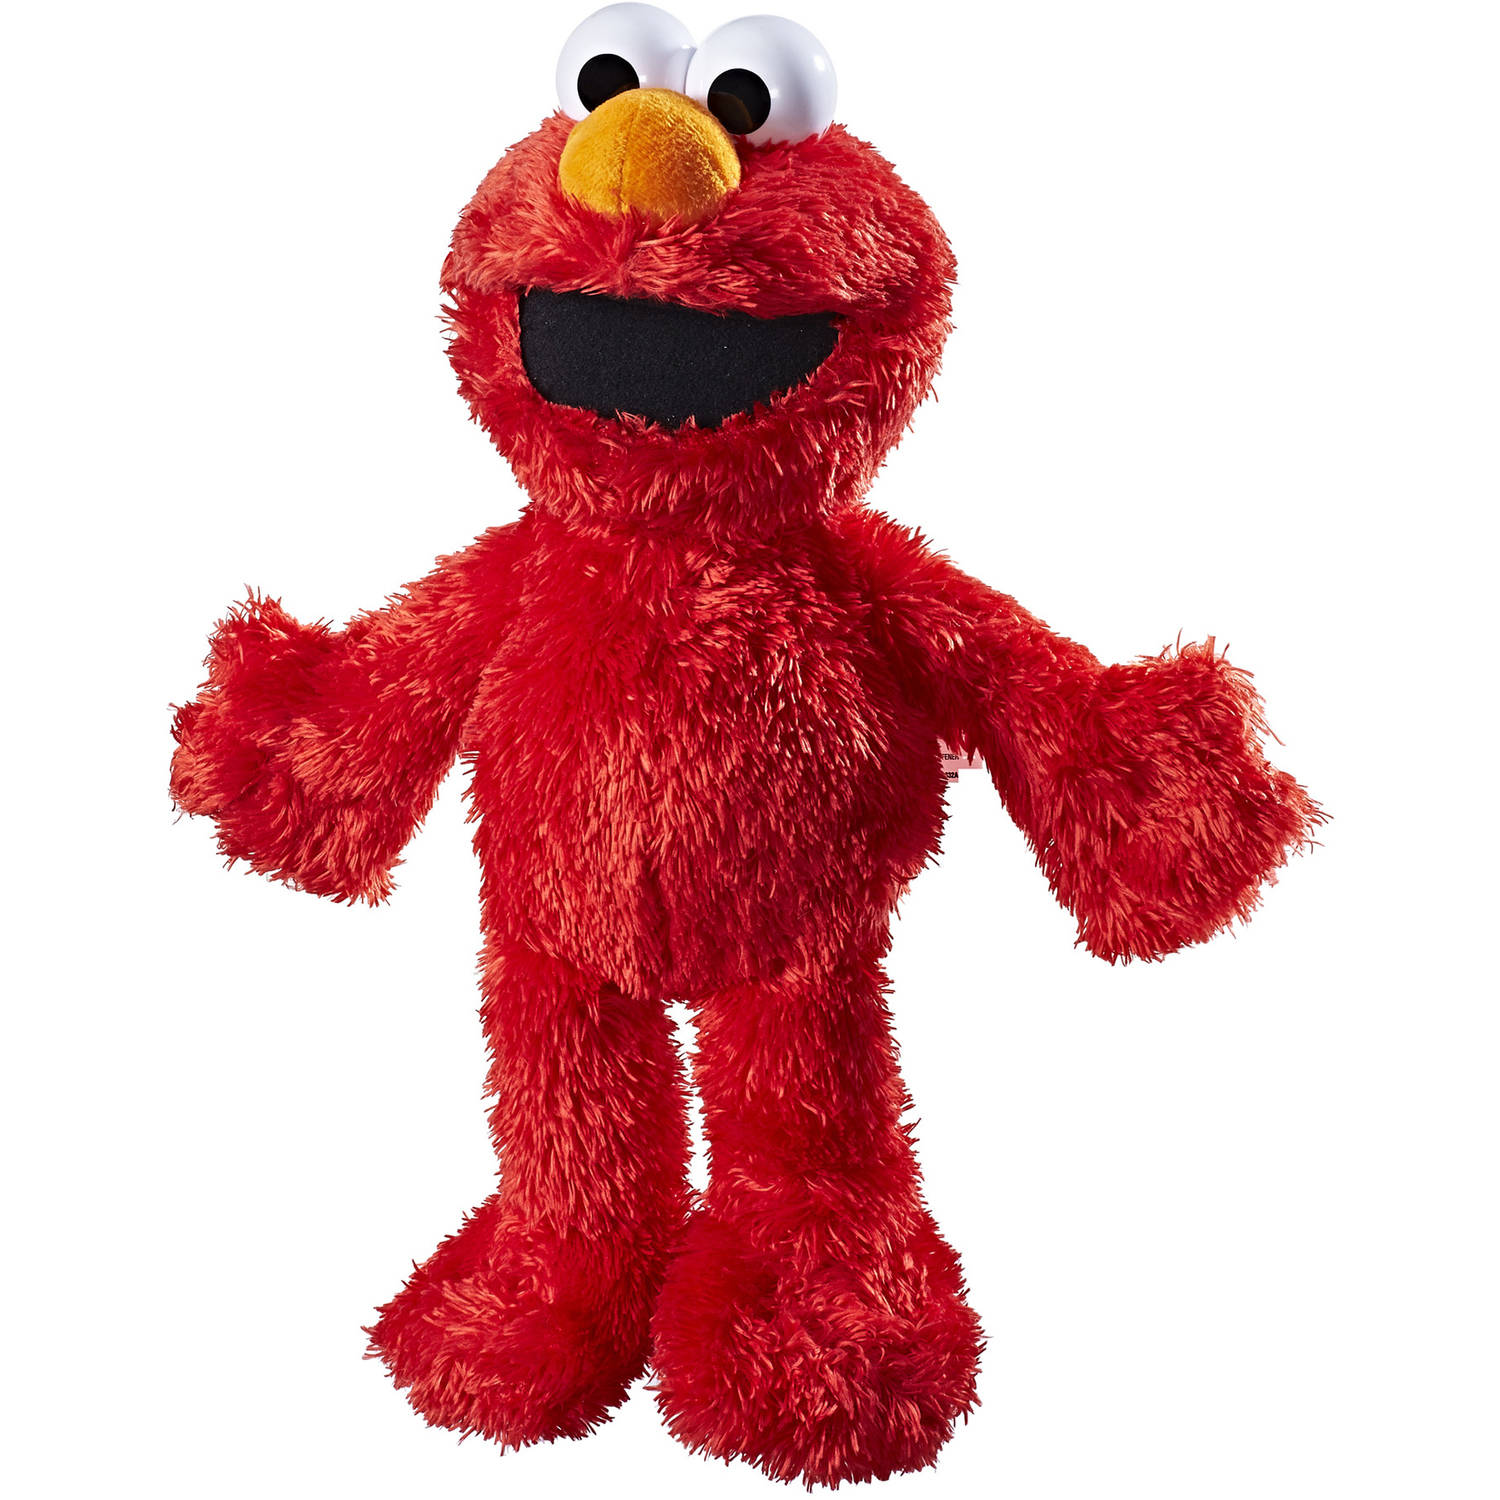 fcb8478938d0 Playskool Friends Sesame Street Tickle Me Elmo